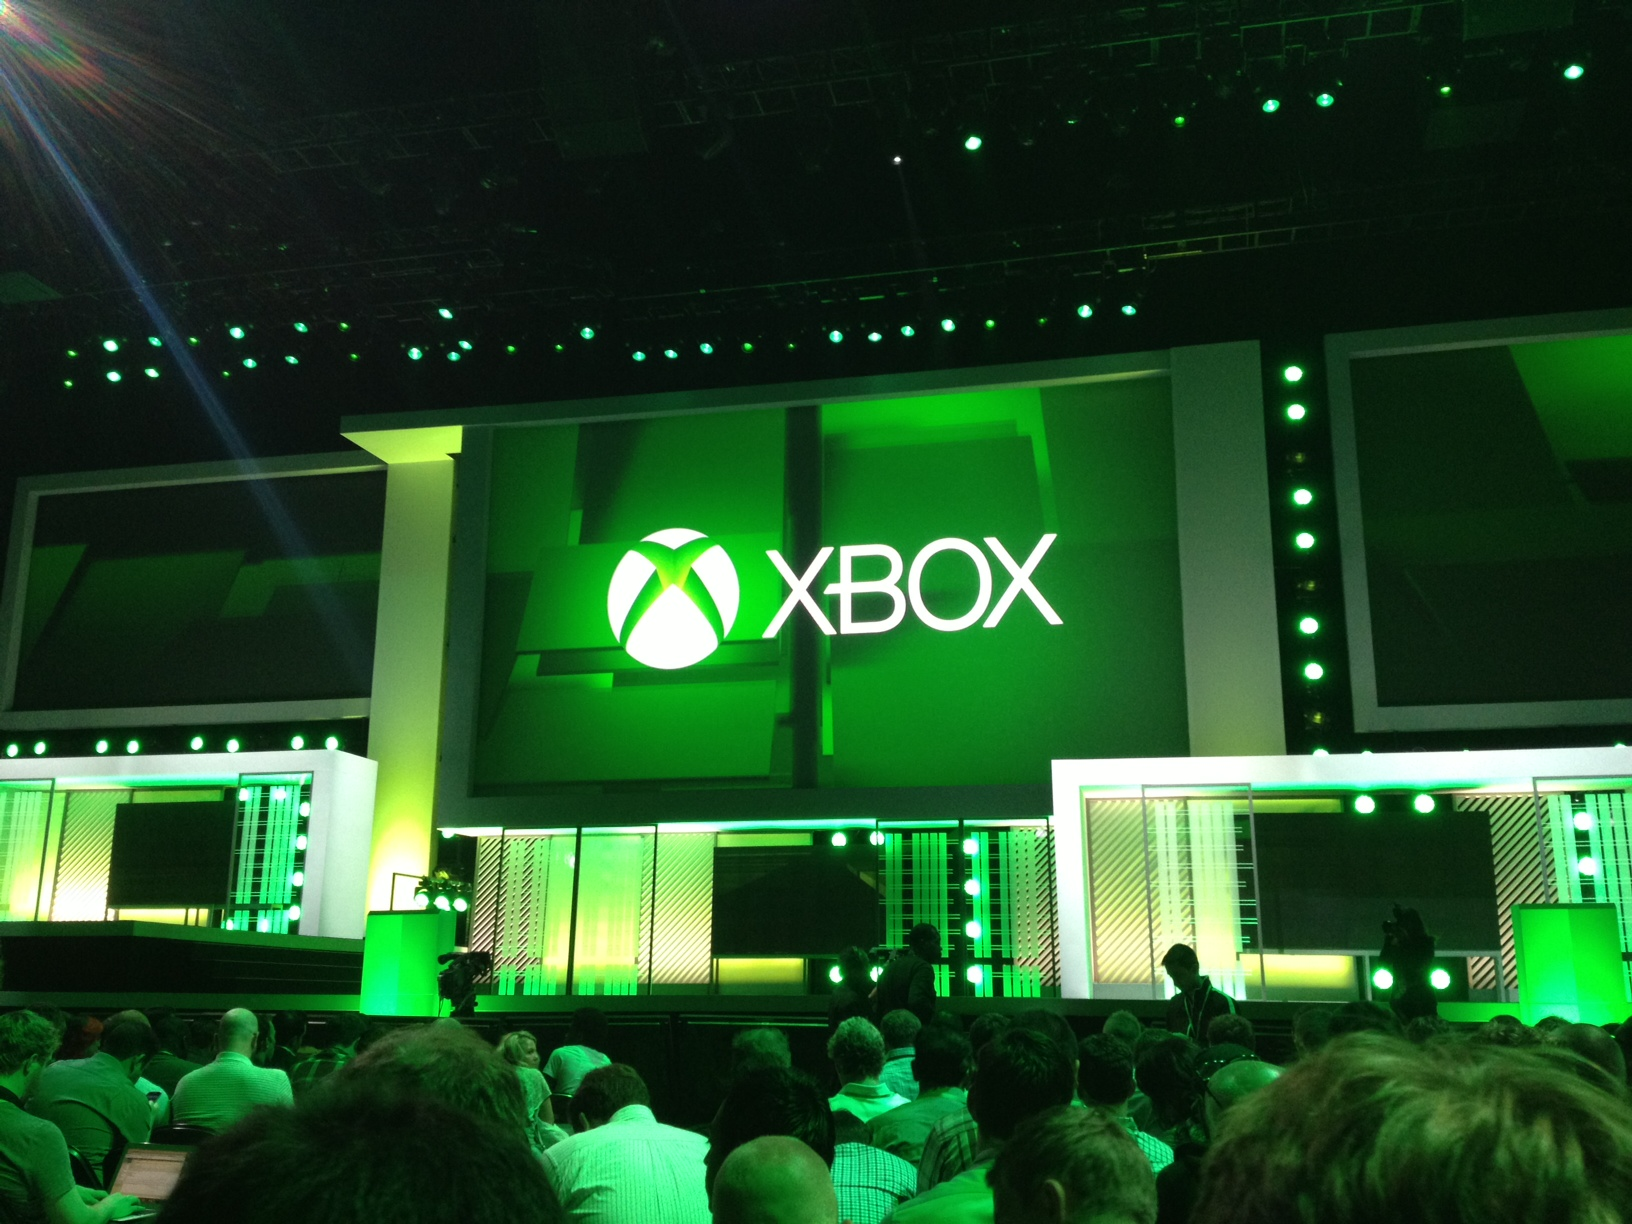 ¡En Vivo! Streaming de la conferencia de Xbox en la E3 2015 [#E32015]